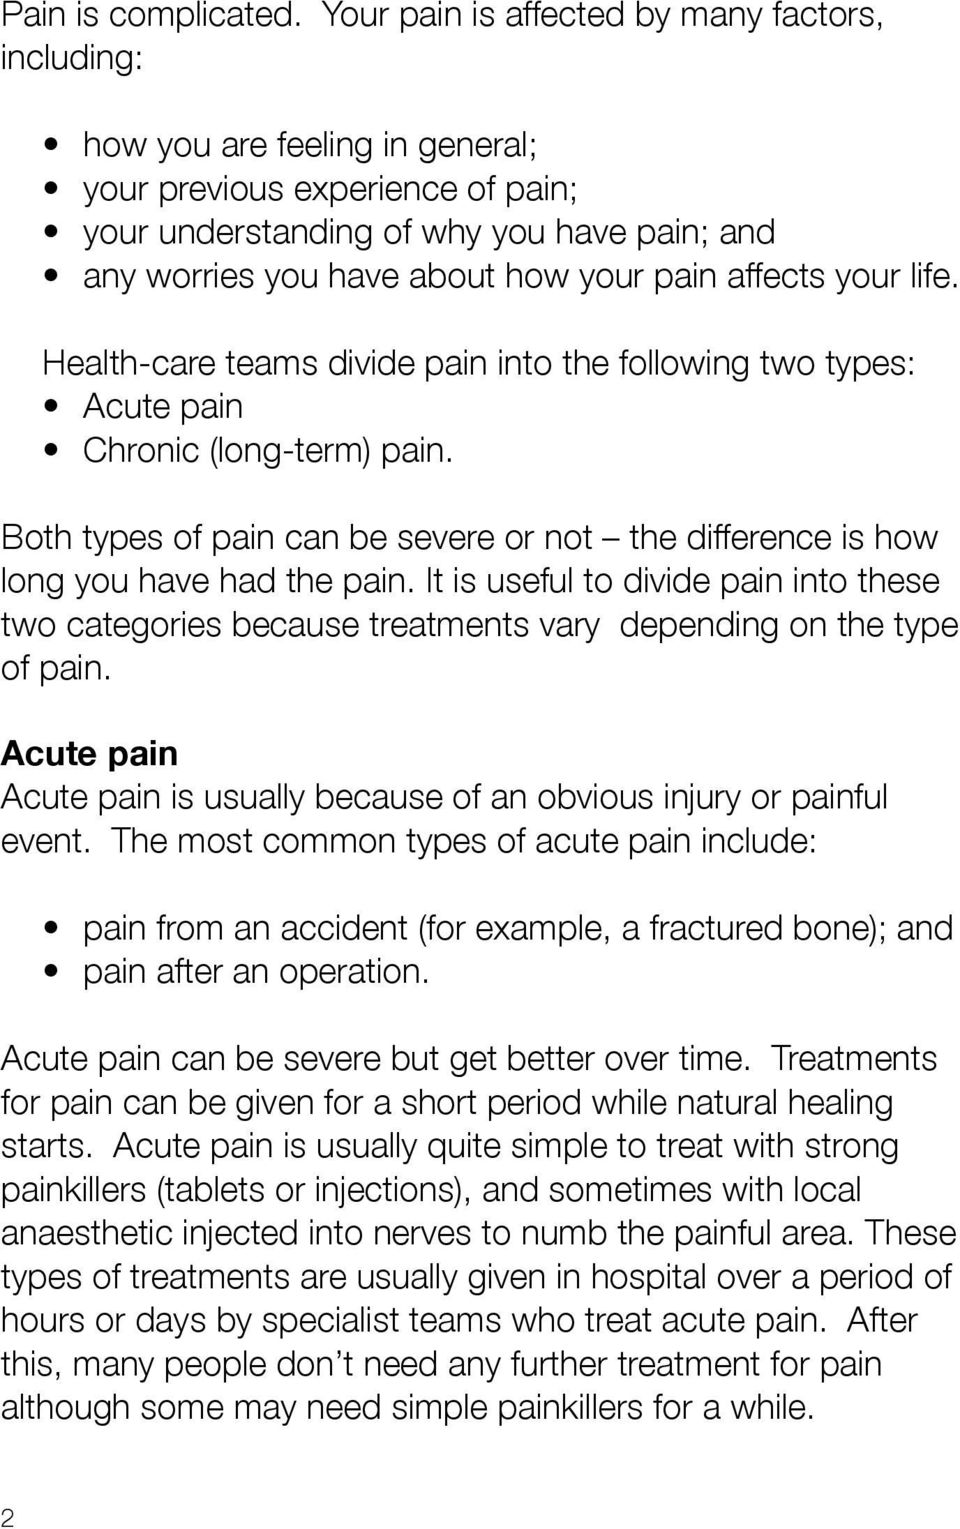 pain affects your life. Health-care teams divide pain into the following two types: Acute pain Chronic (long-term) pain.